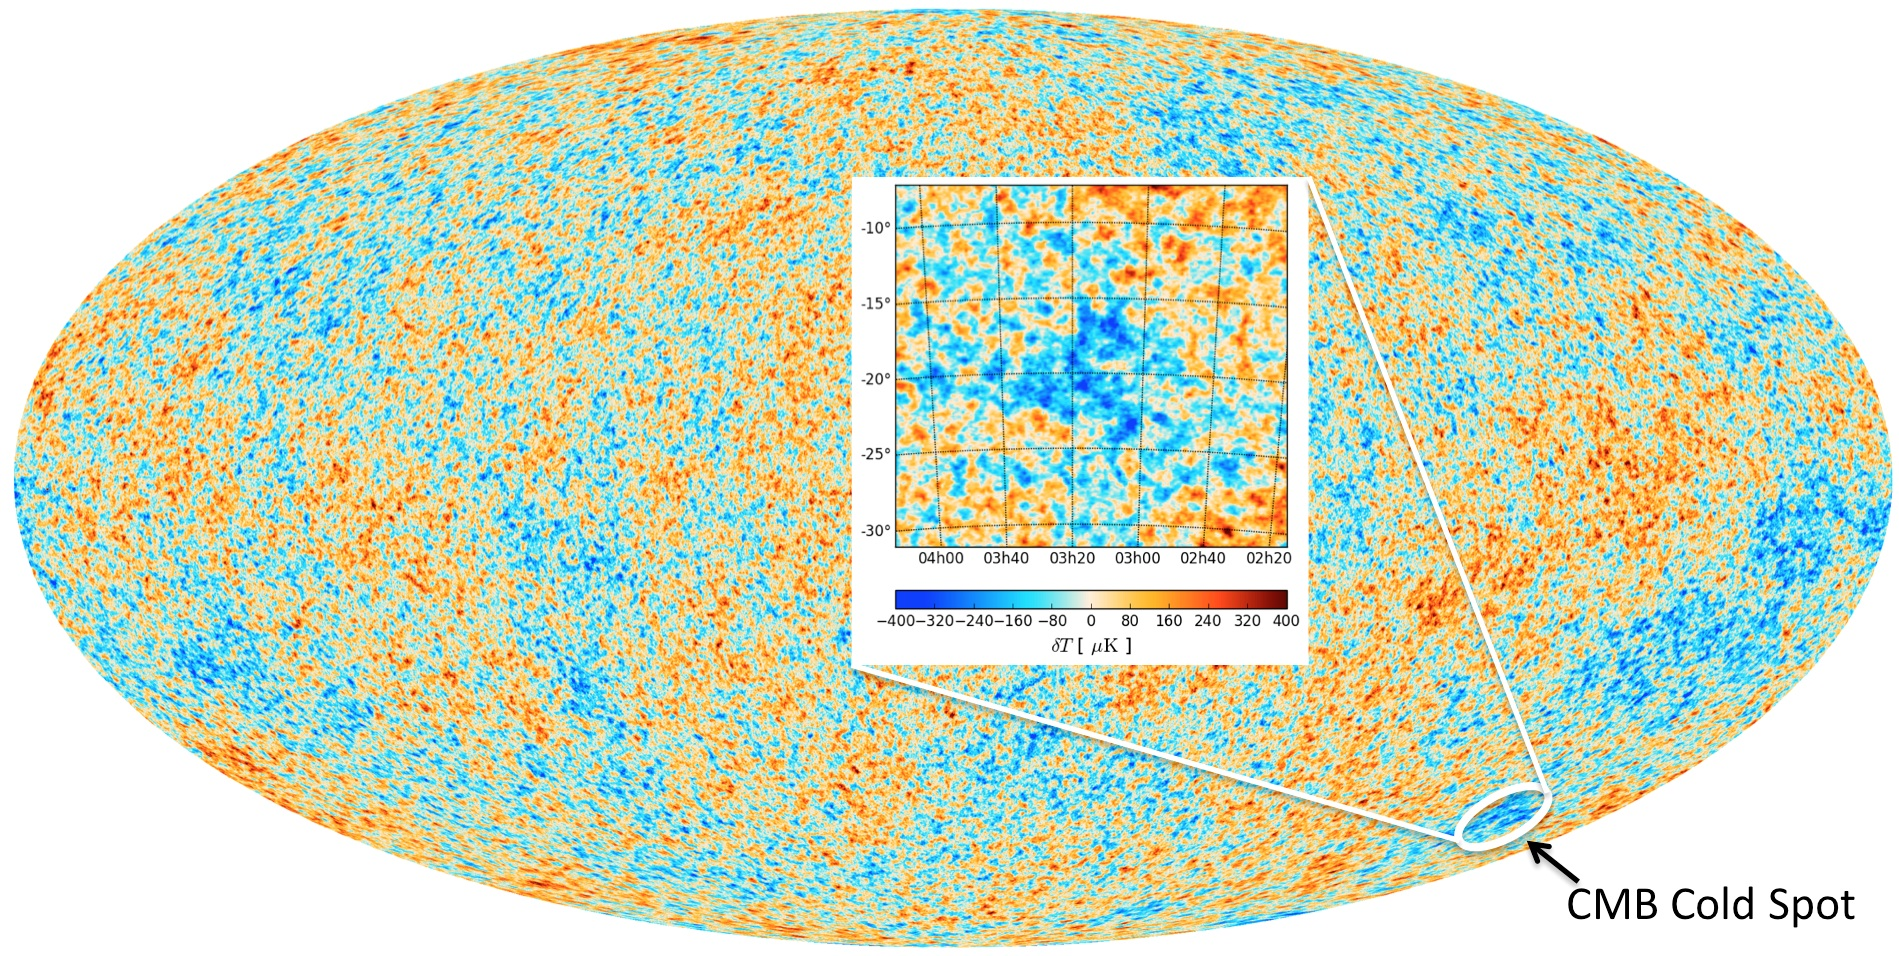 Map of the cosmic microwave background (CMB) sky produced by the Planck satellite. The Cold Spot is shown in the inset, with coordinates and the temperature difference in the scale at the bottom. - Image Credit: ESA/Durham University.